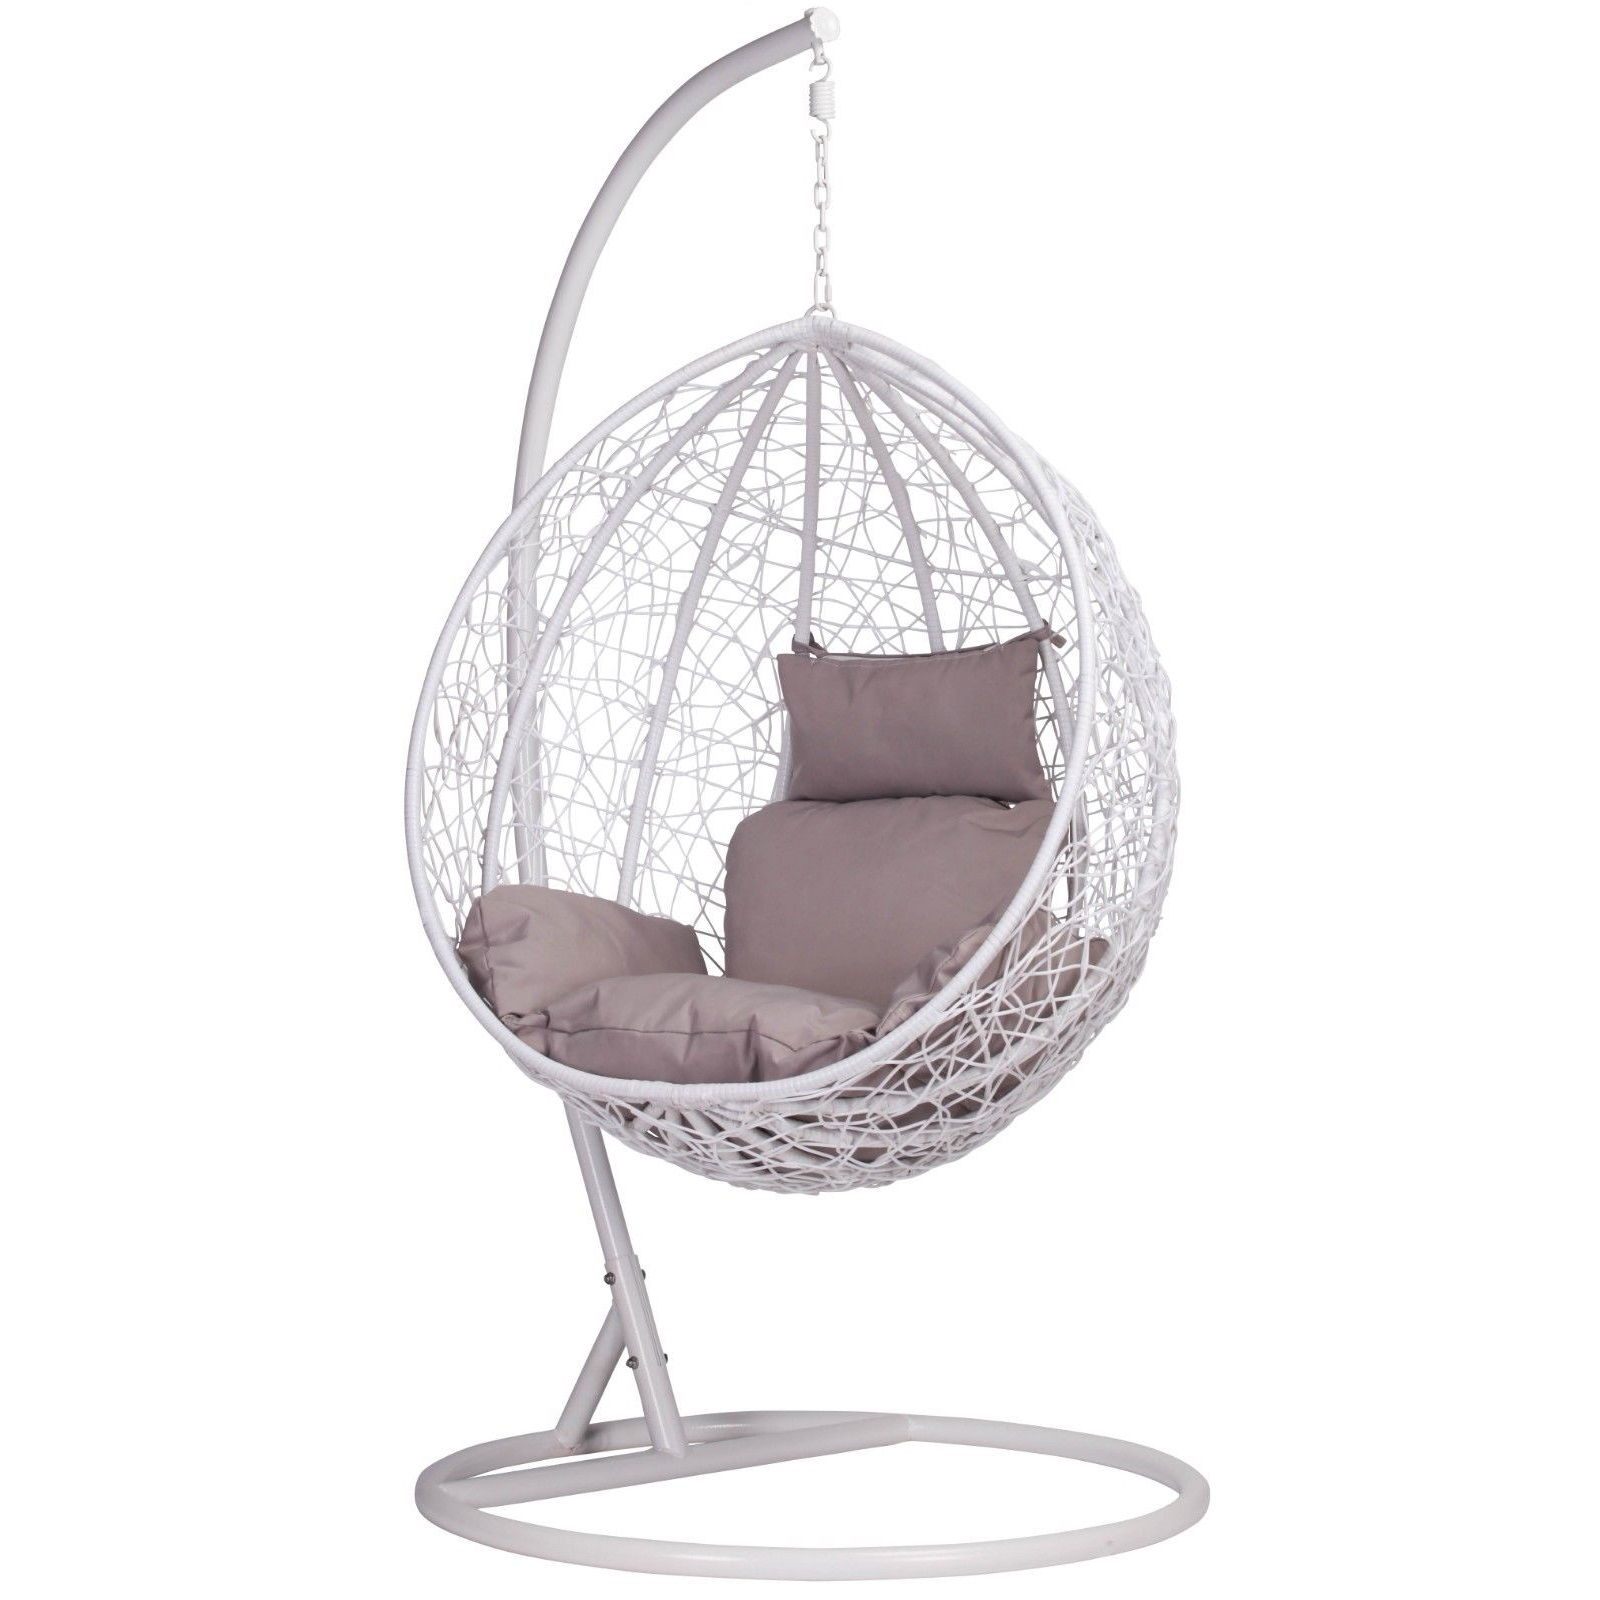 Rattan Swing Chair Egg Chair White Rattan Swing Weave Patio Garden Hanging Egg Chair